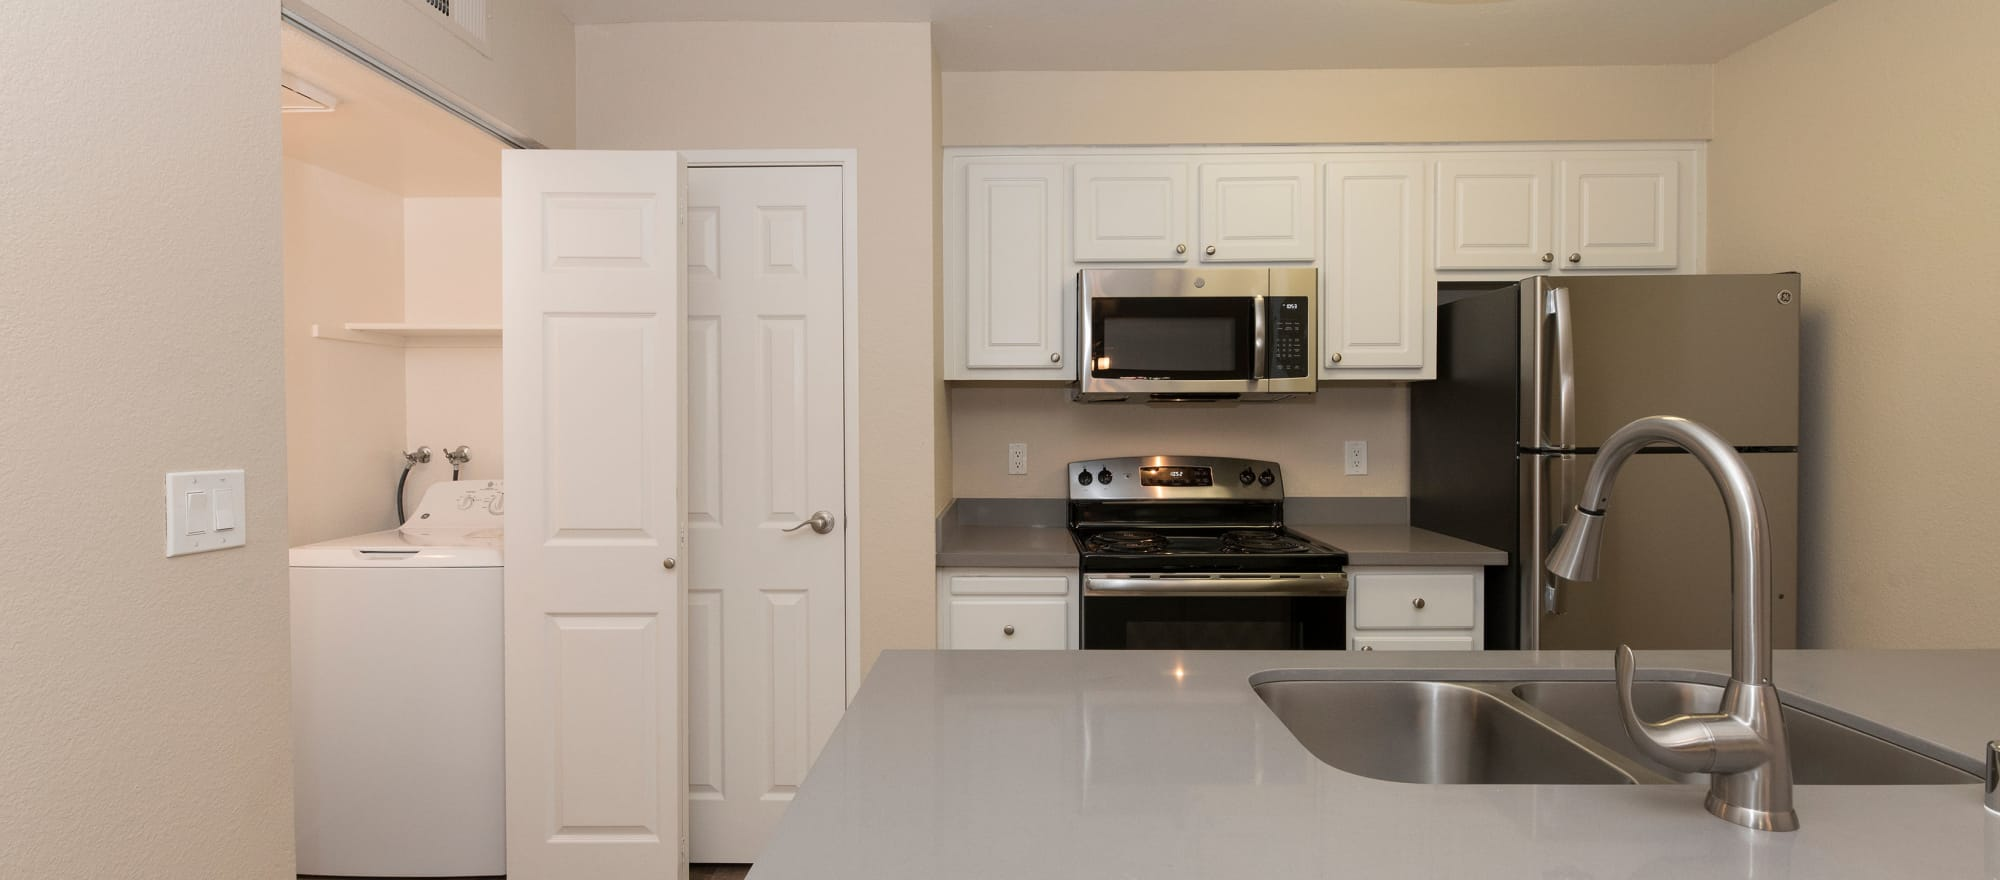 Sink in the kitchen at Sterling Heights Apartment Homes in Benicia, California